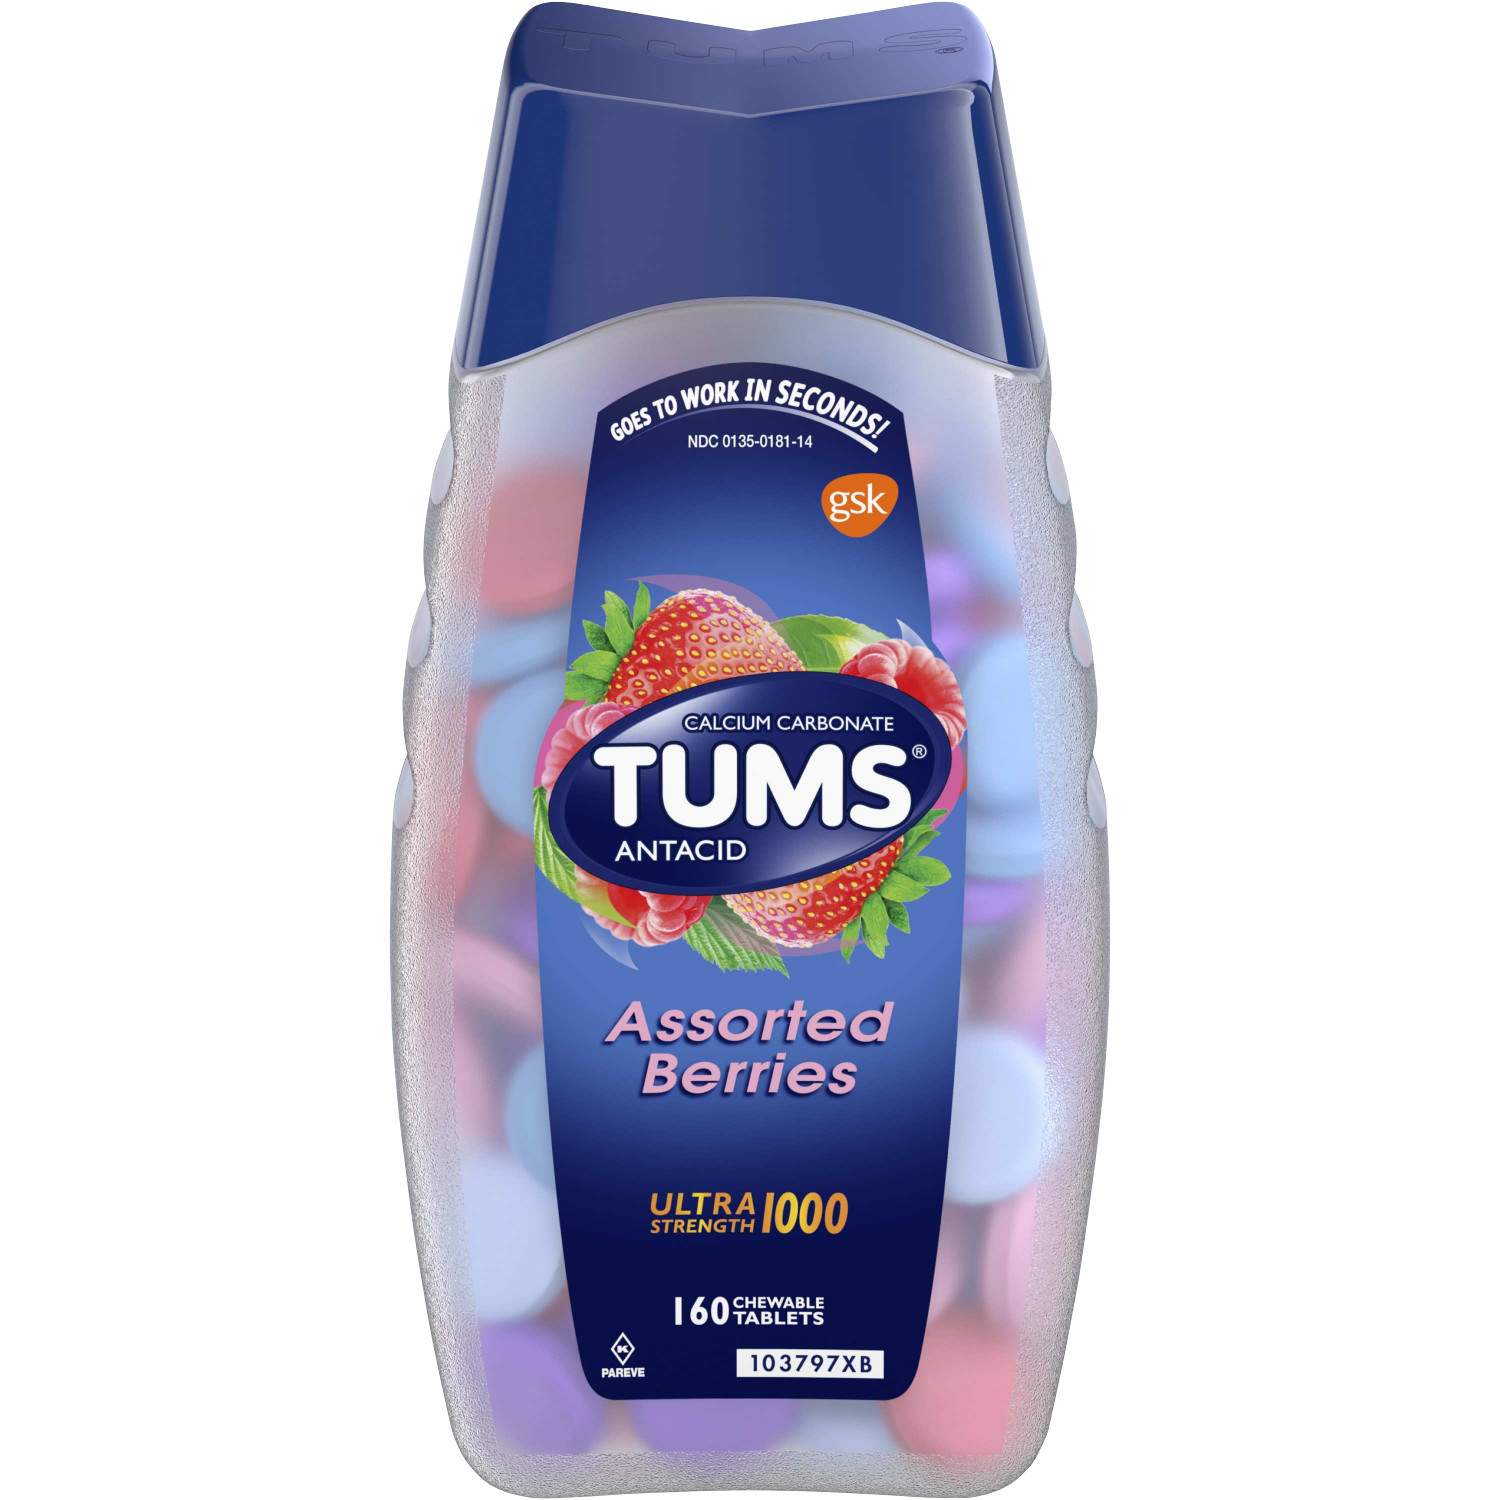 TUMS Antacid Chewable Tablets, Ultra Strength for Heartburn Relief, Assorted Berries, 160 count